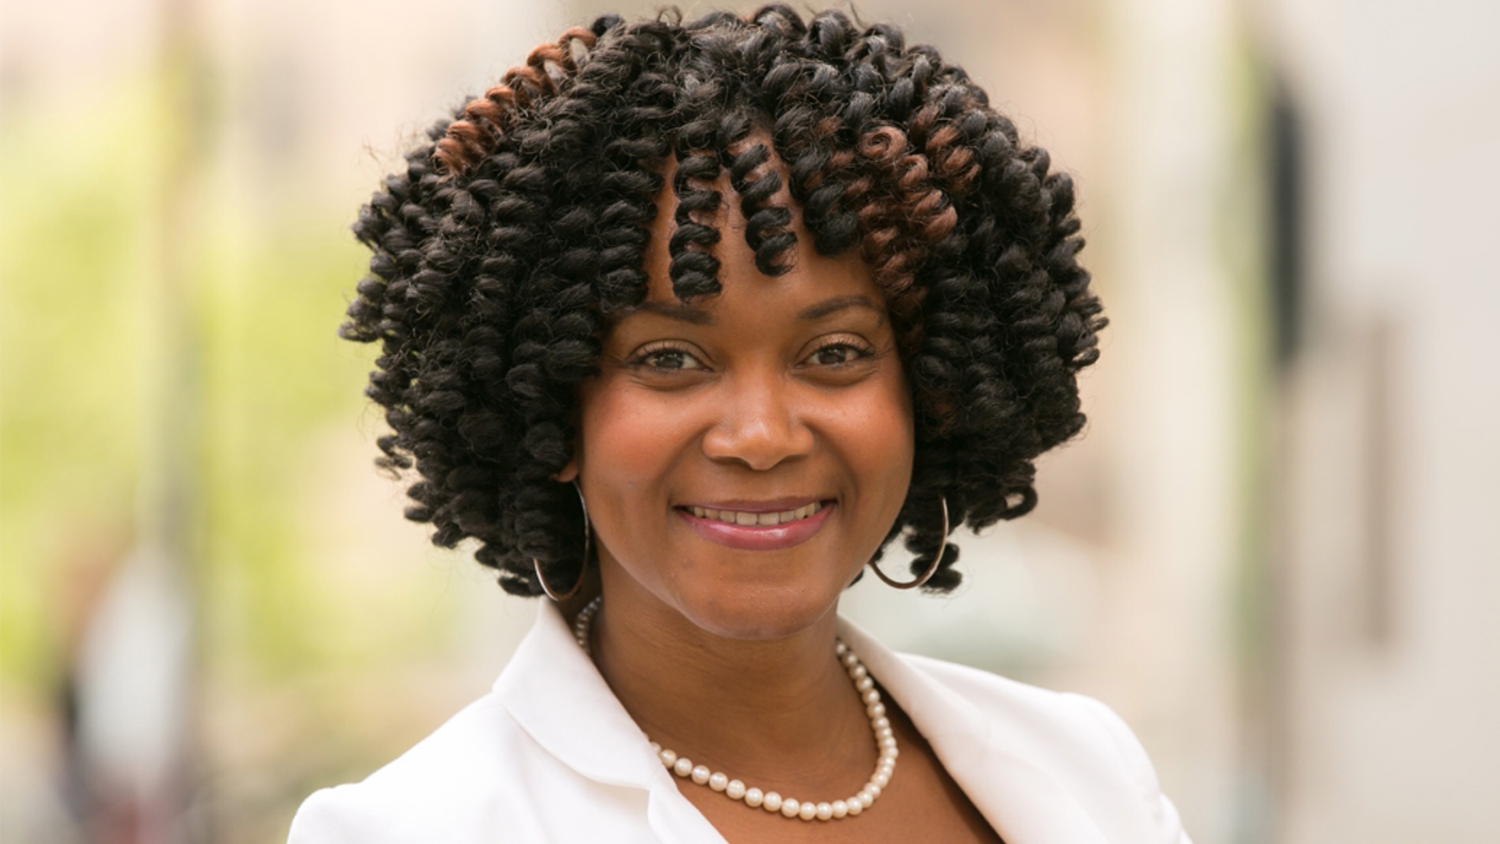 NC State College of Education Professor Joy Gaston Gayles